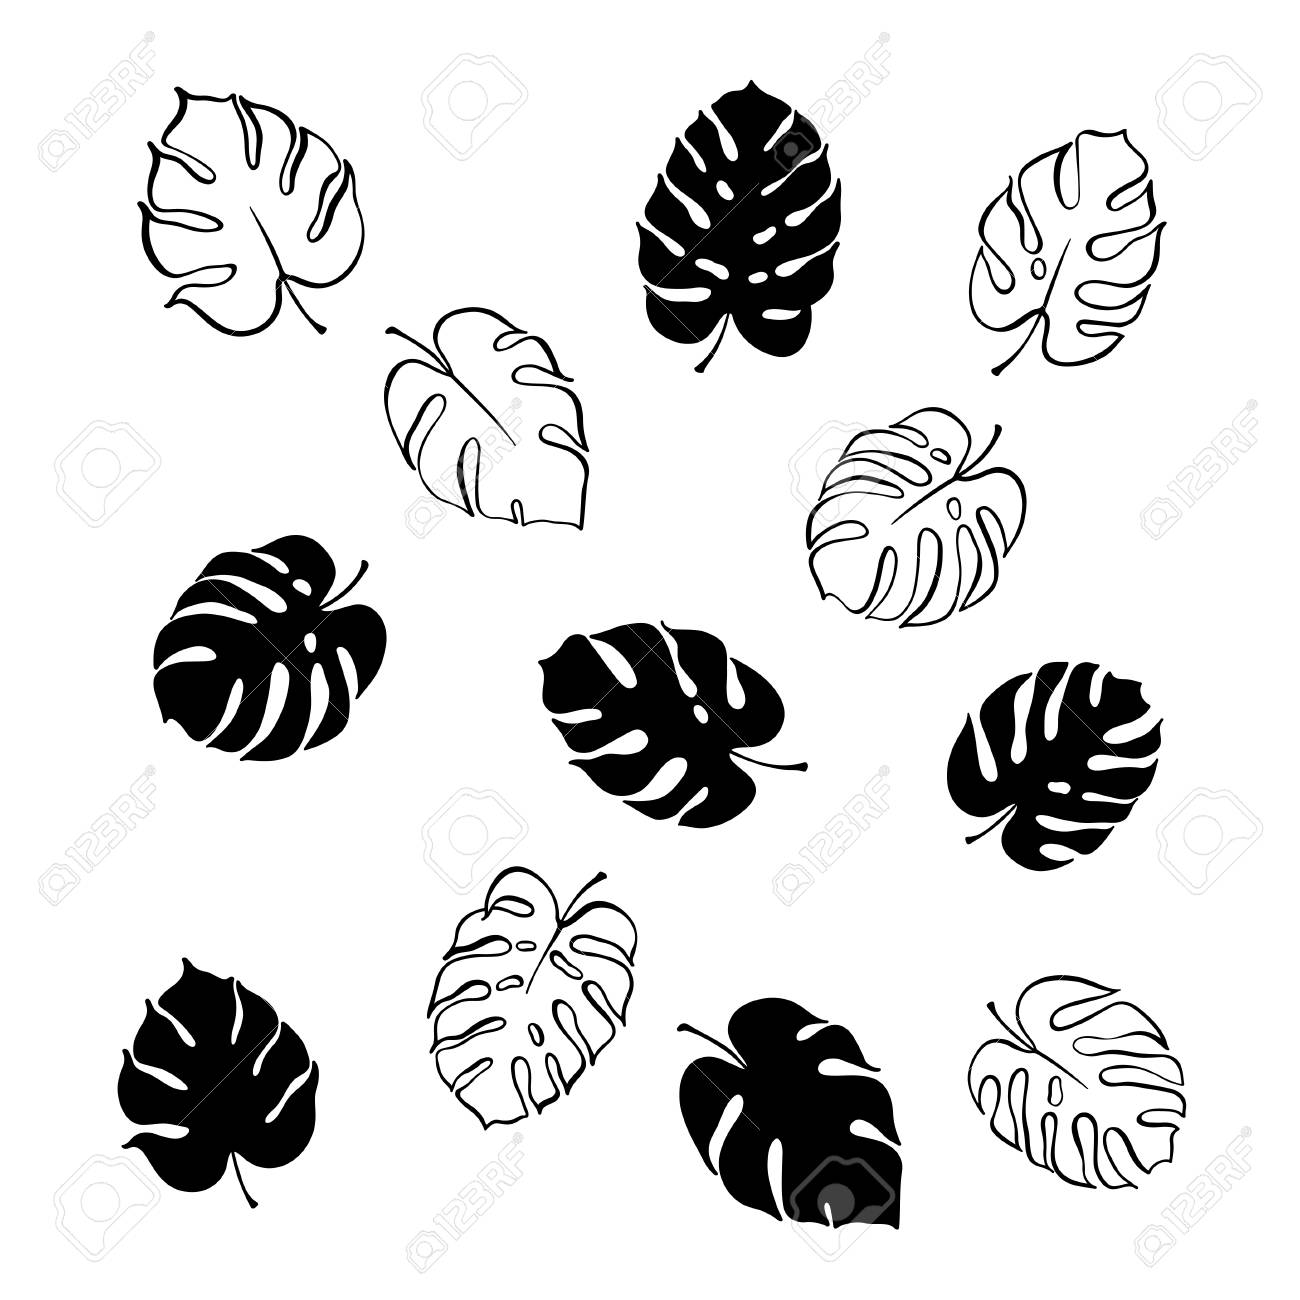 Vector Botanical Illustration Of Monstera Leaf Isolated Outline Royalty Free Cliparts Vectors And Stock Illustration Image 101686781 I painted the leaves on paper and draw the ink leaf branch outline separately. vector botanical illustration of monstera leaf isolated outline